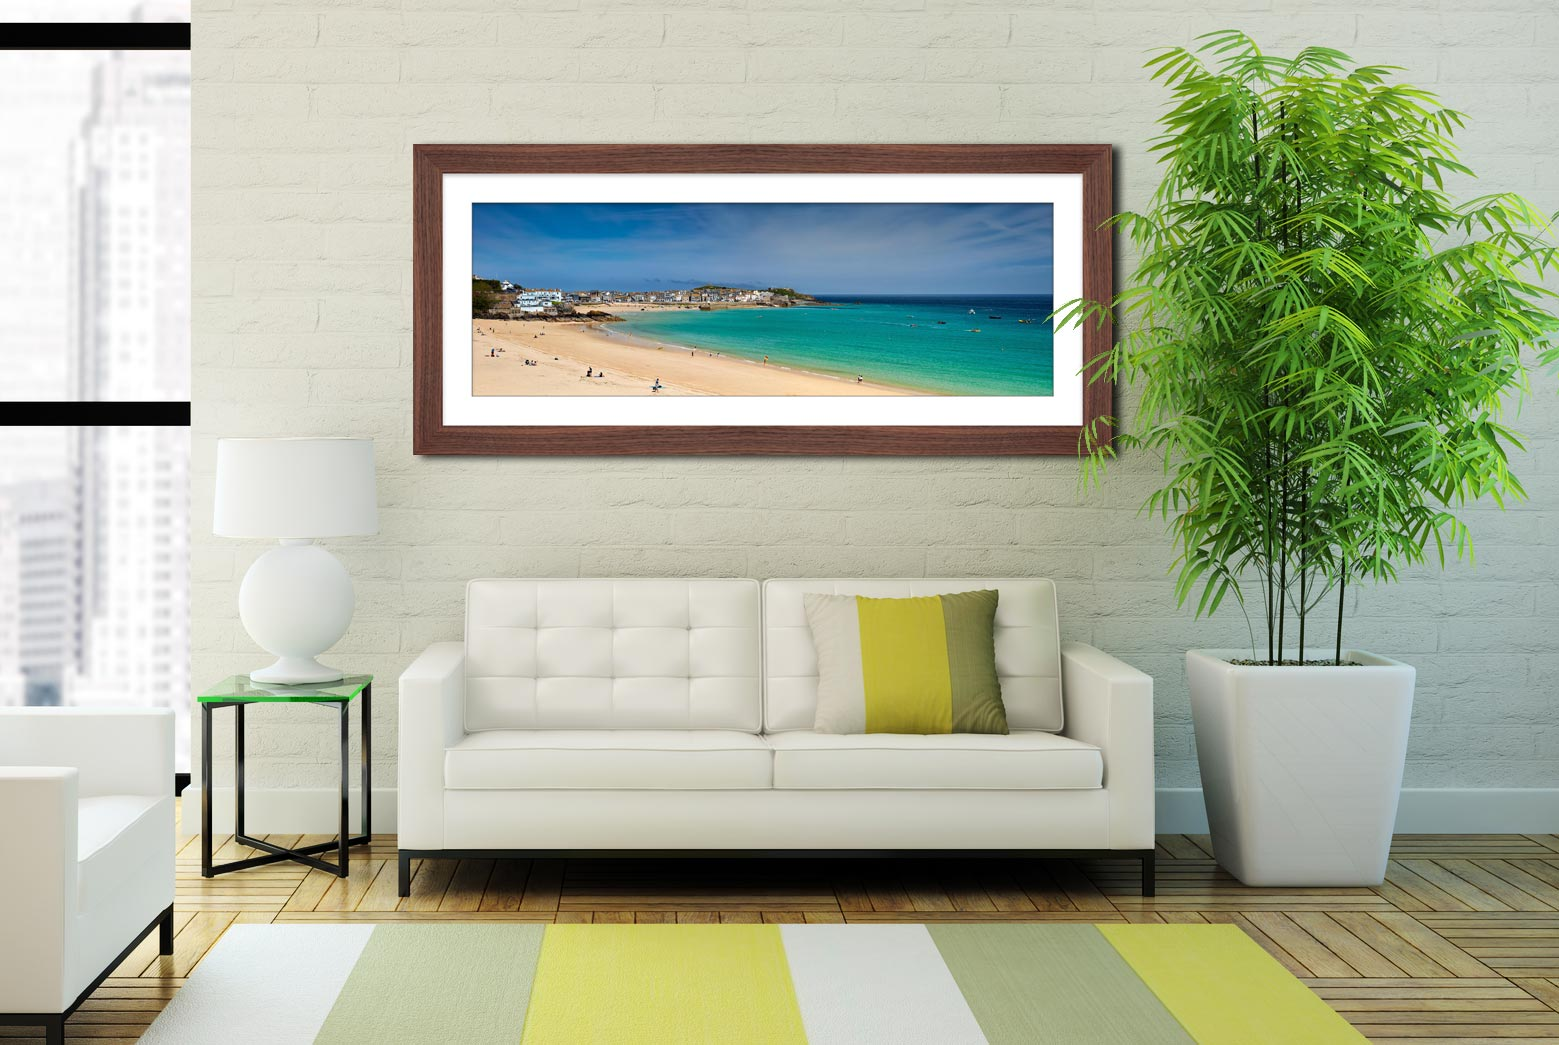 St Ives Bay Porthminster Beach - Framed Print with Mount on Wall